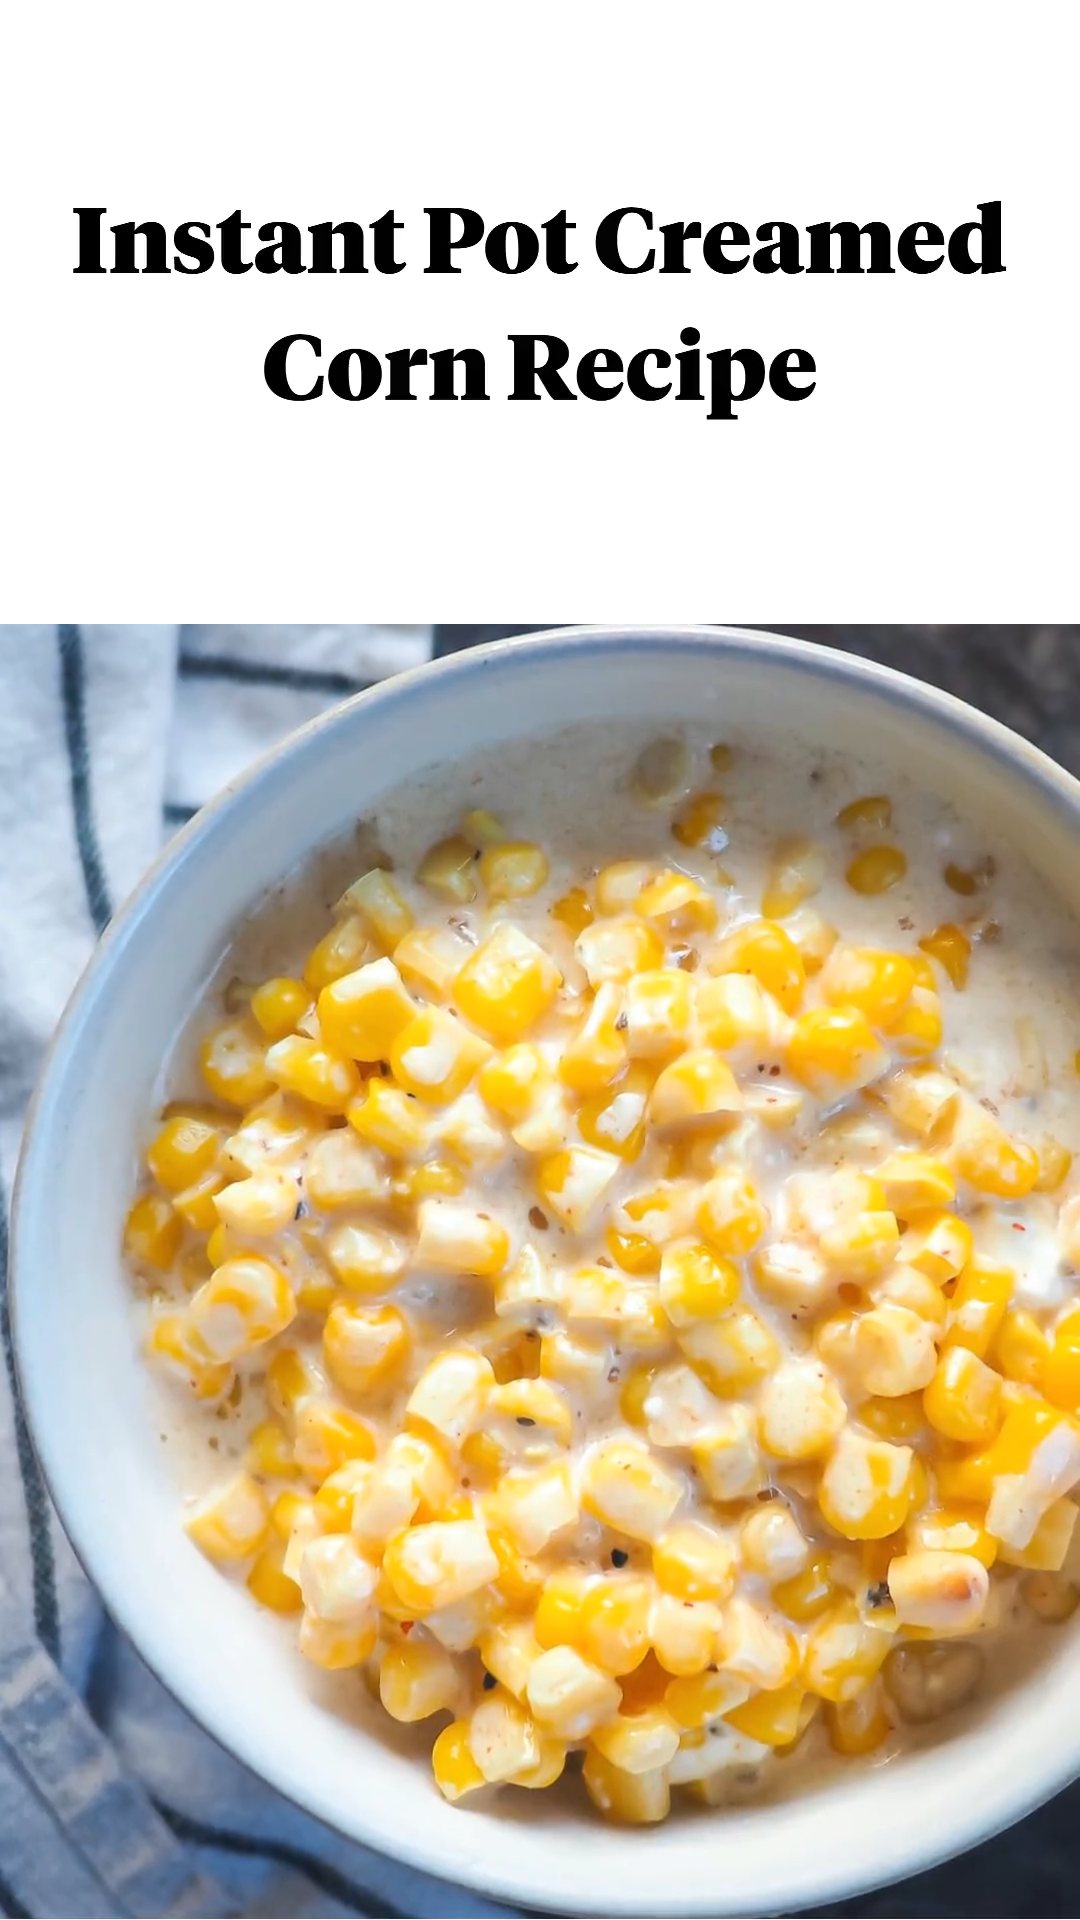 Instant Pot Creamed Corn Recipe